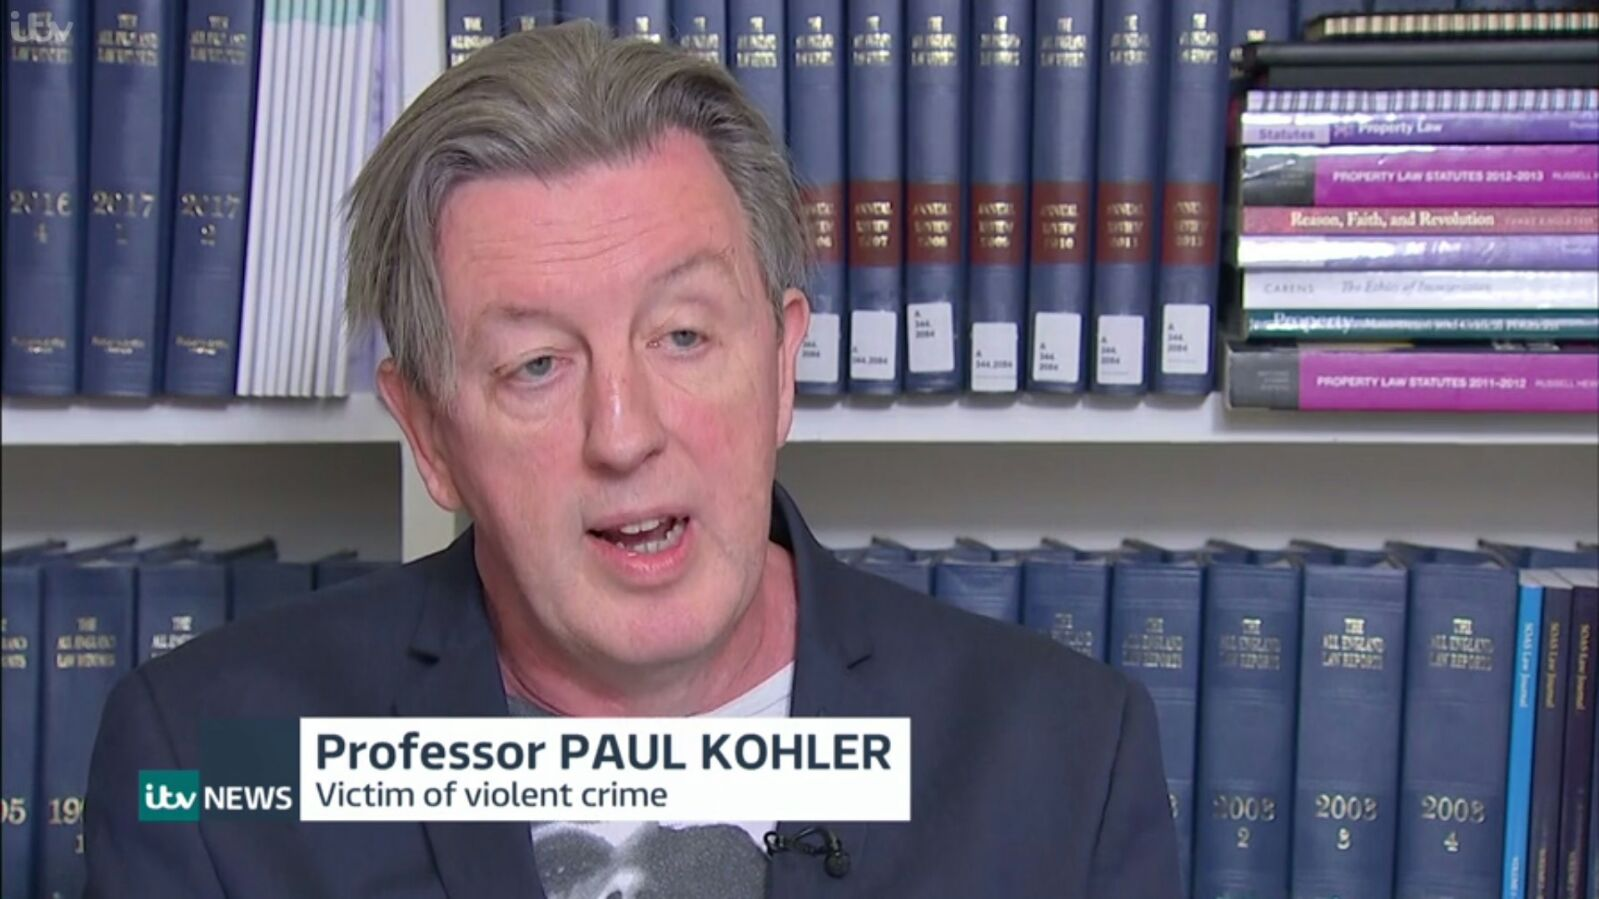 Paul Kohler speaking about the threat to Wimbledon Police Station on ITV News